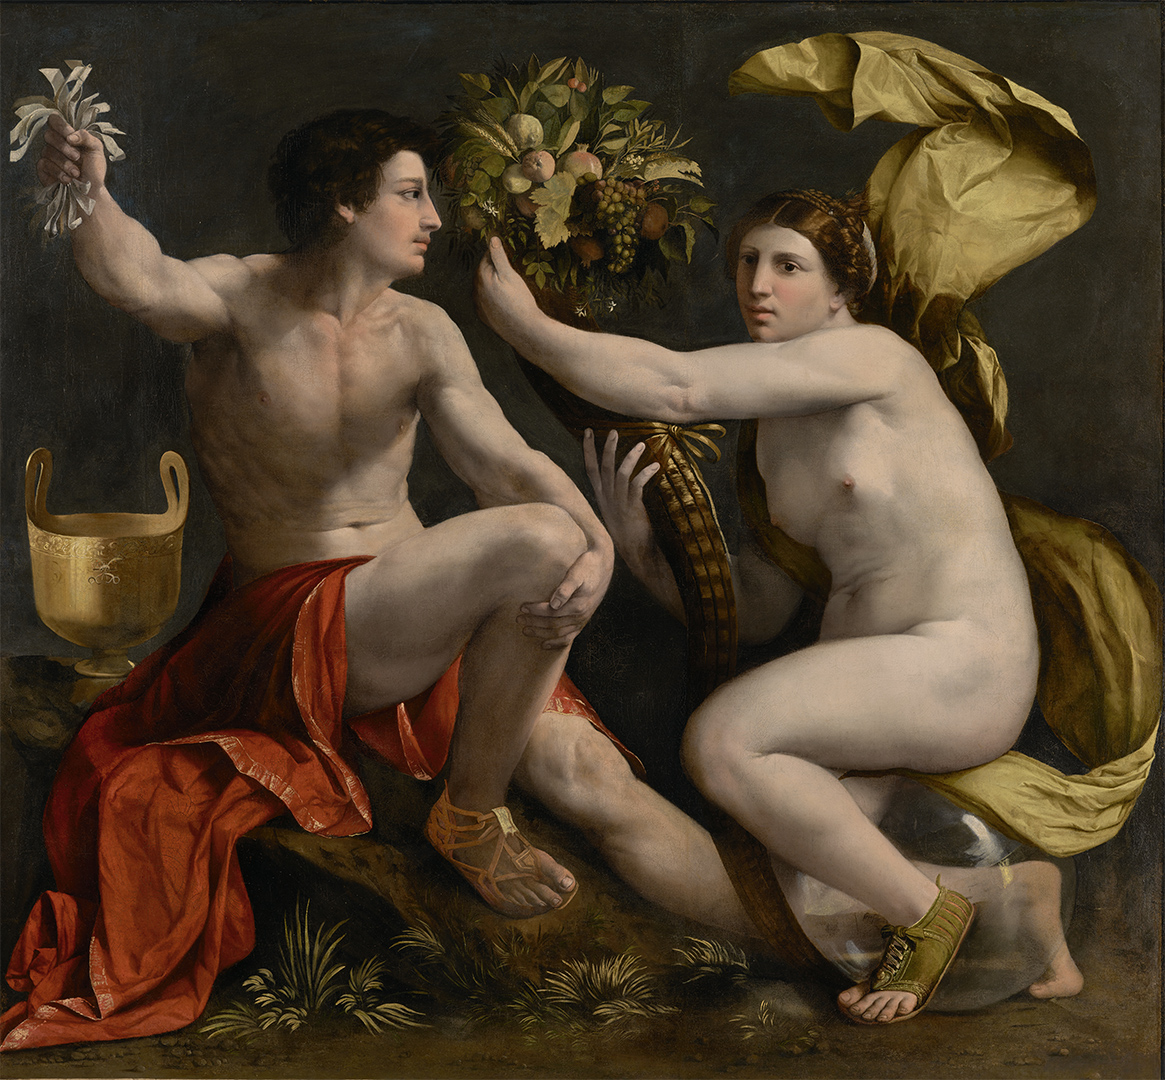 The renaissance's love affair with the nude gets a provocative show